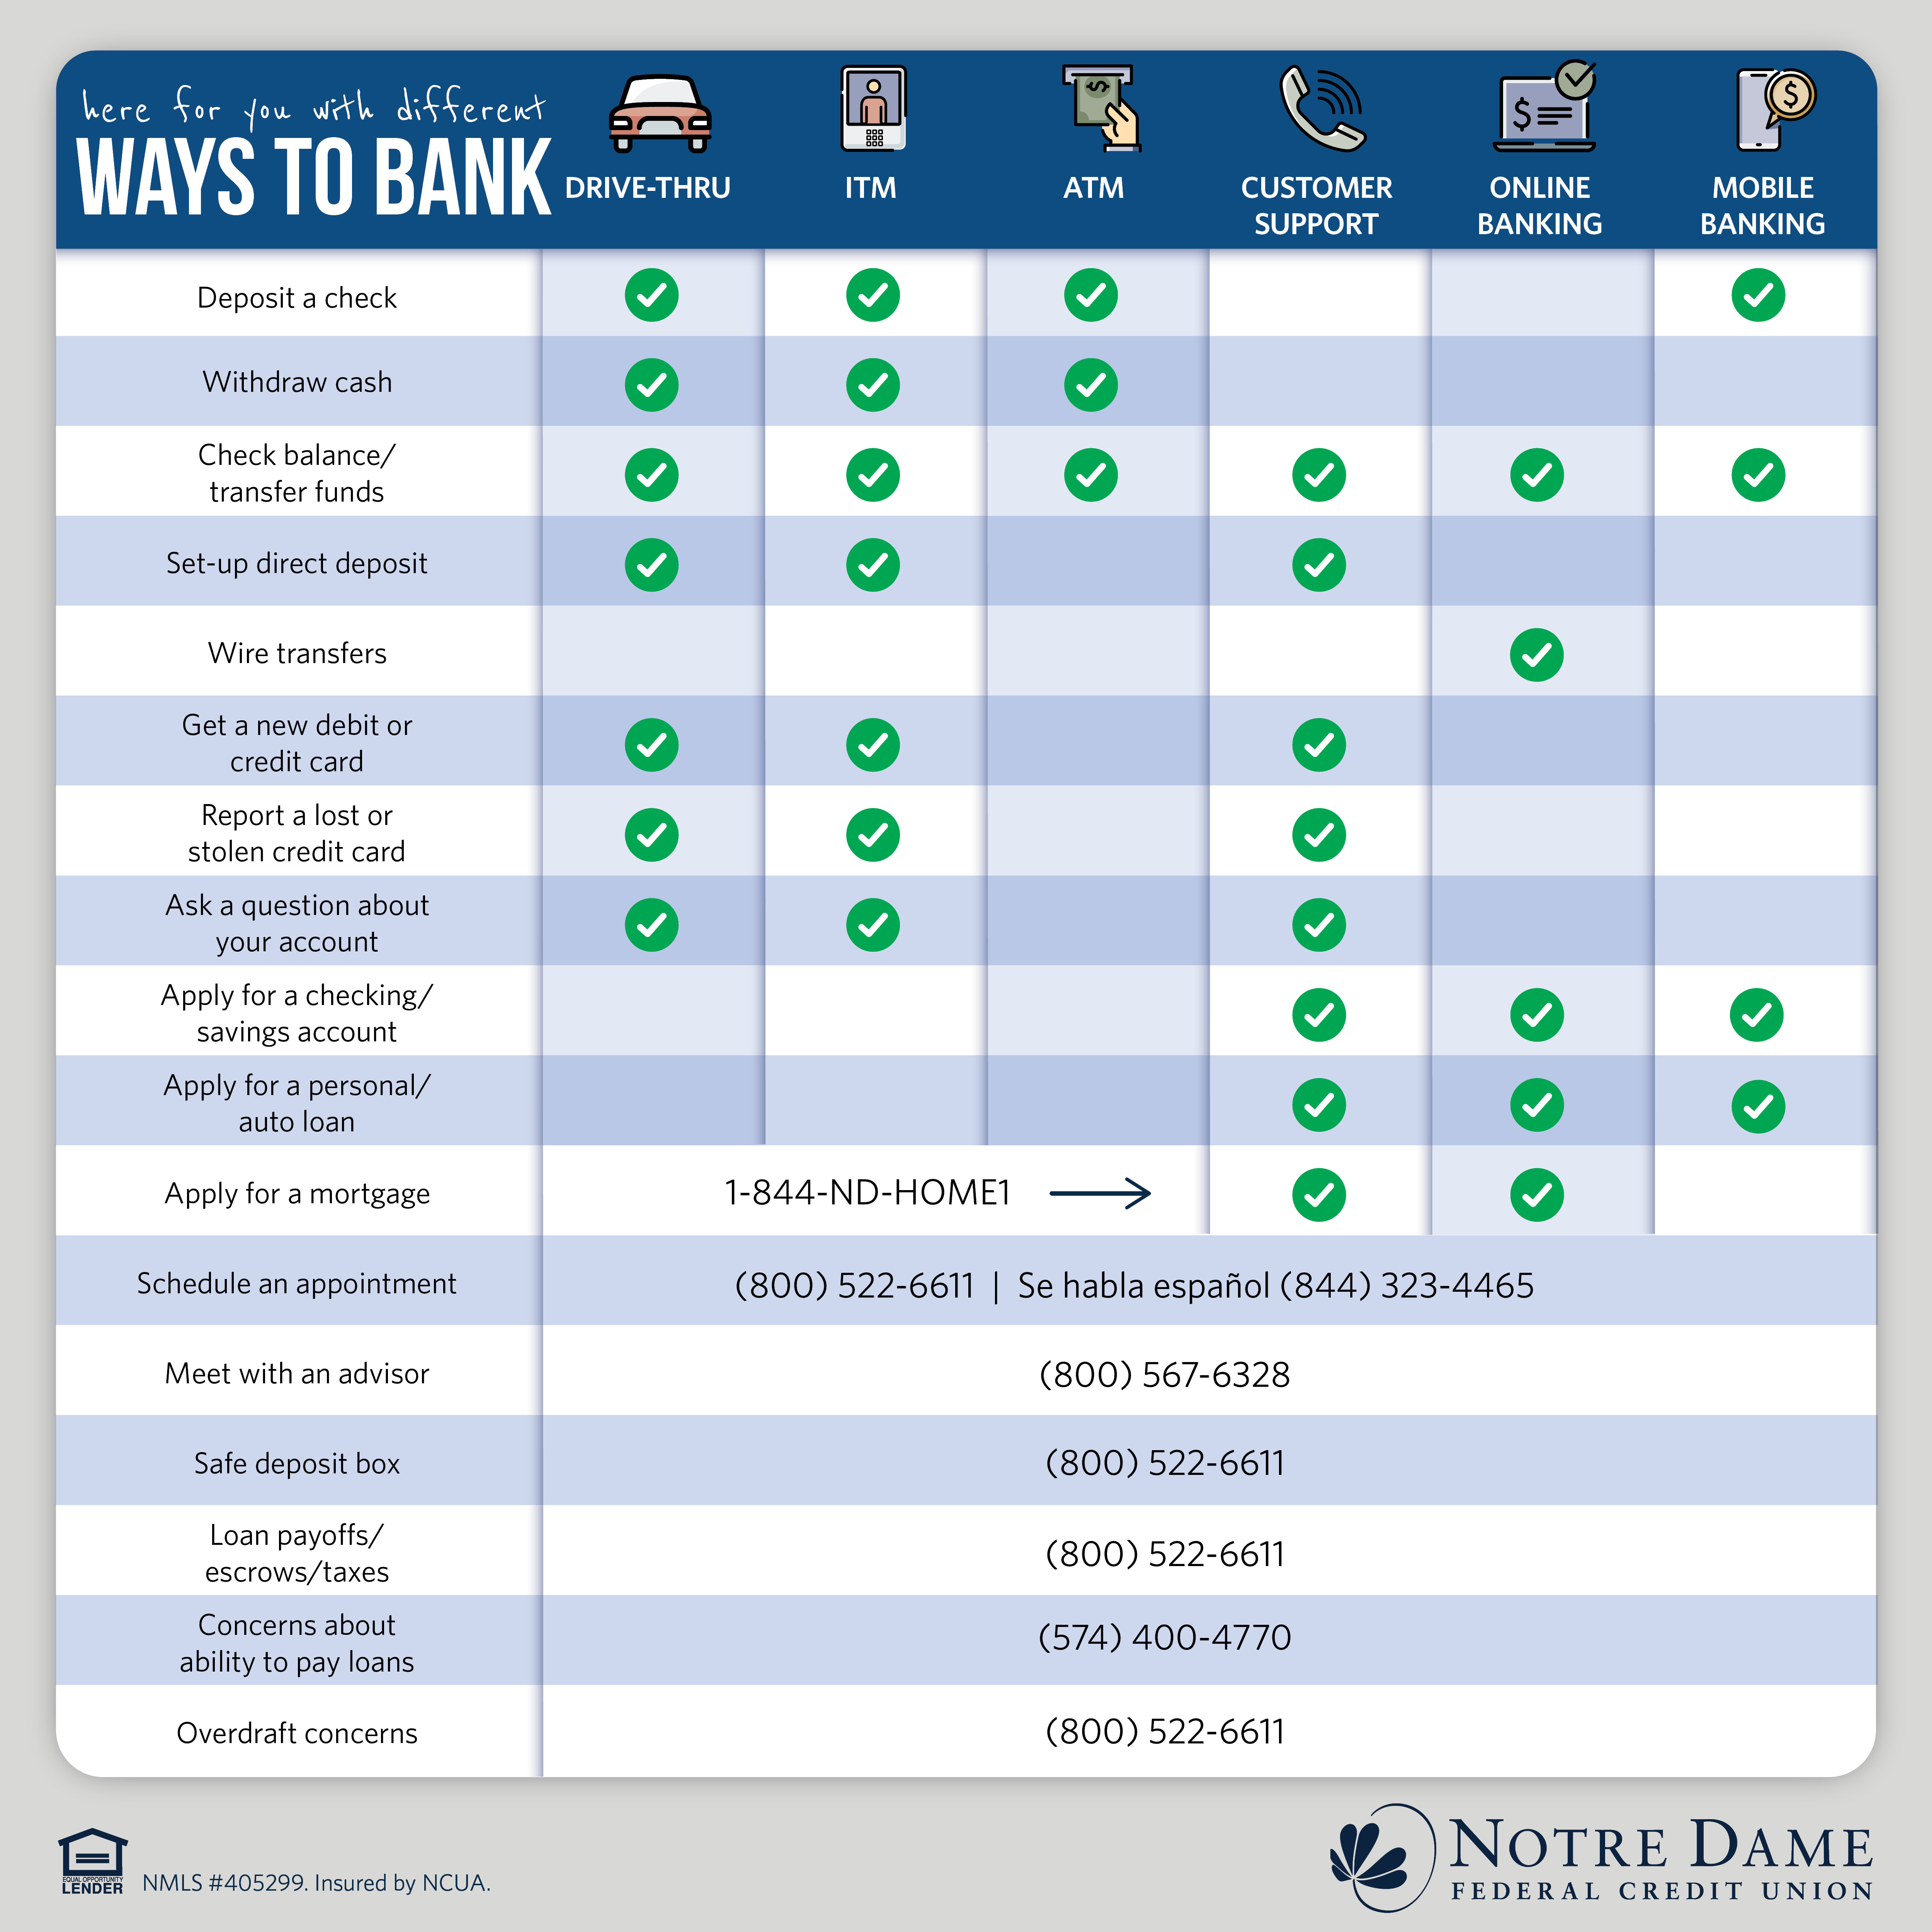 here for you with different ways to bank. Drive-thru, ITM, ATM, Member Support, Online Banking, Mobile Banking